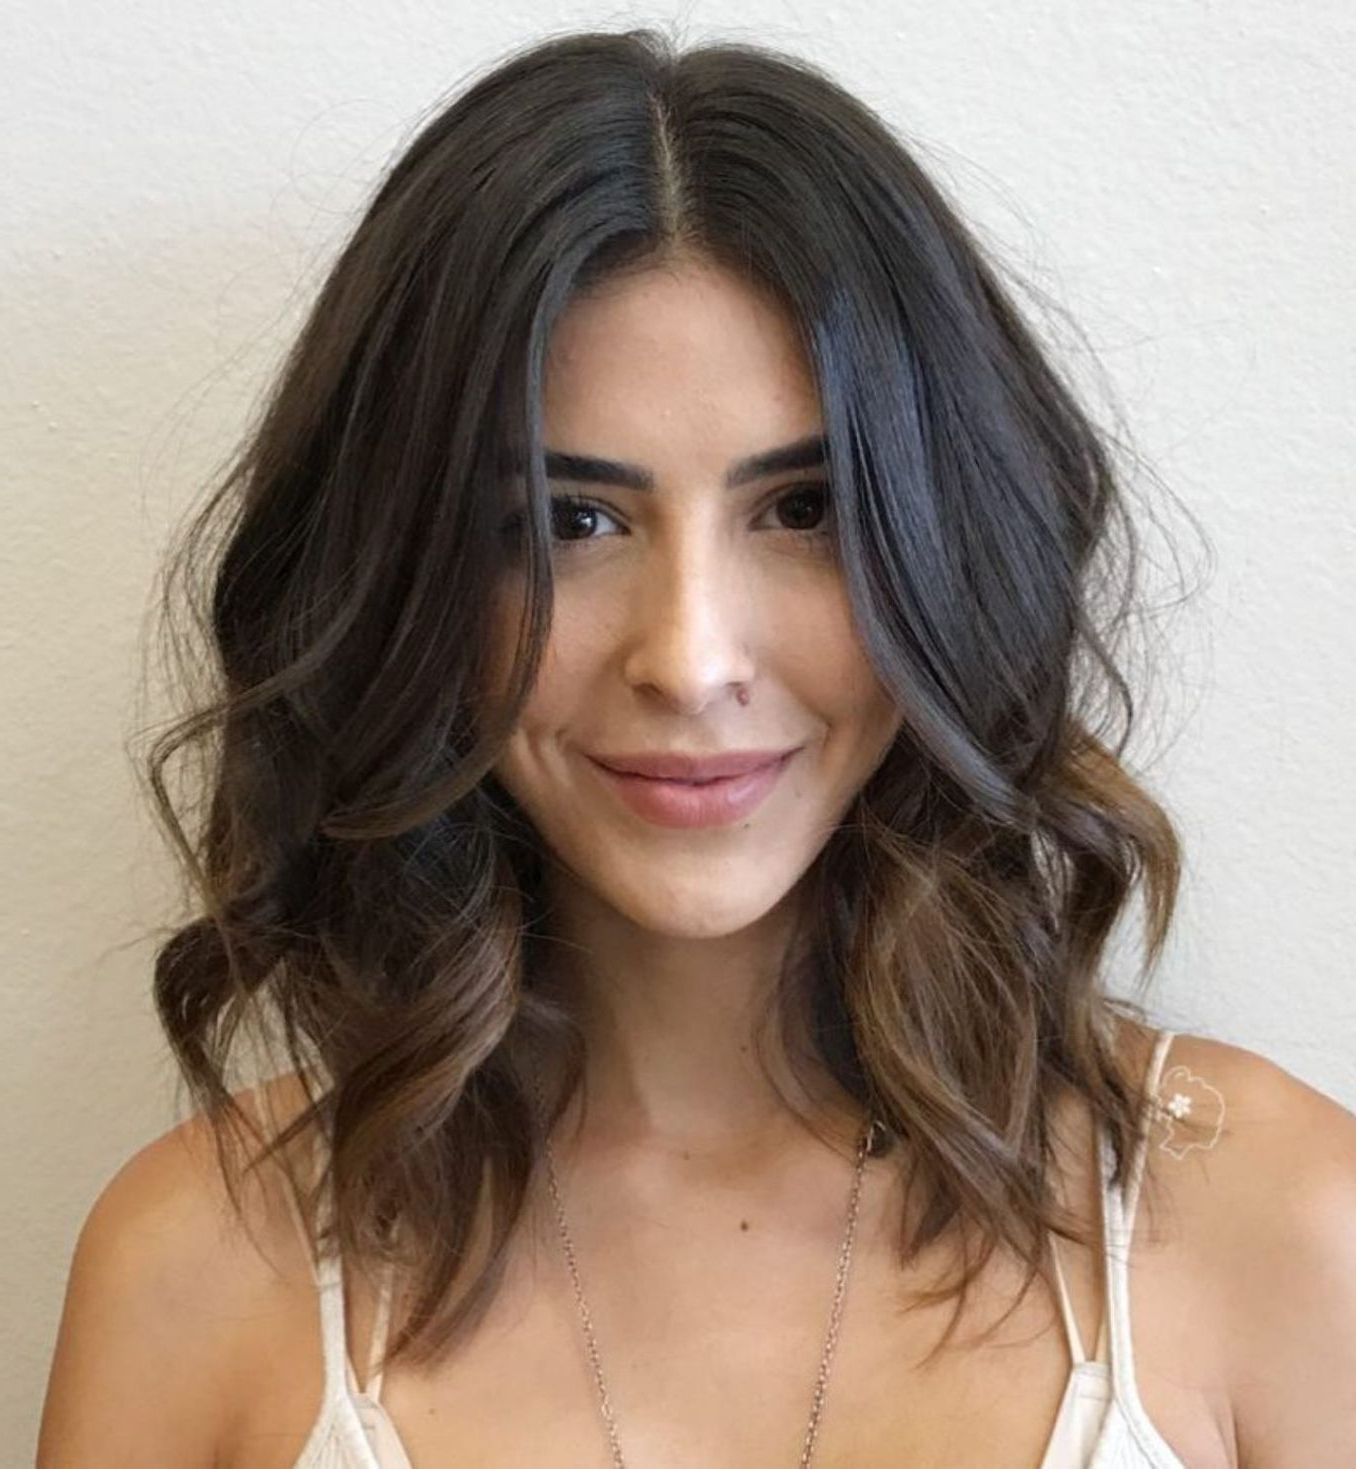 50 Gorgeous Wavy Bob Hairstyles With An Extra Touch Of Femininity Pertaining To Loosely Waved Messy Brunette Bob Hairstyles (View 10 of 20)